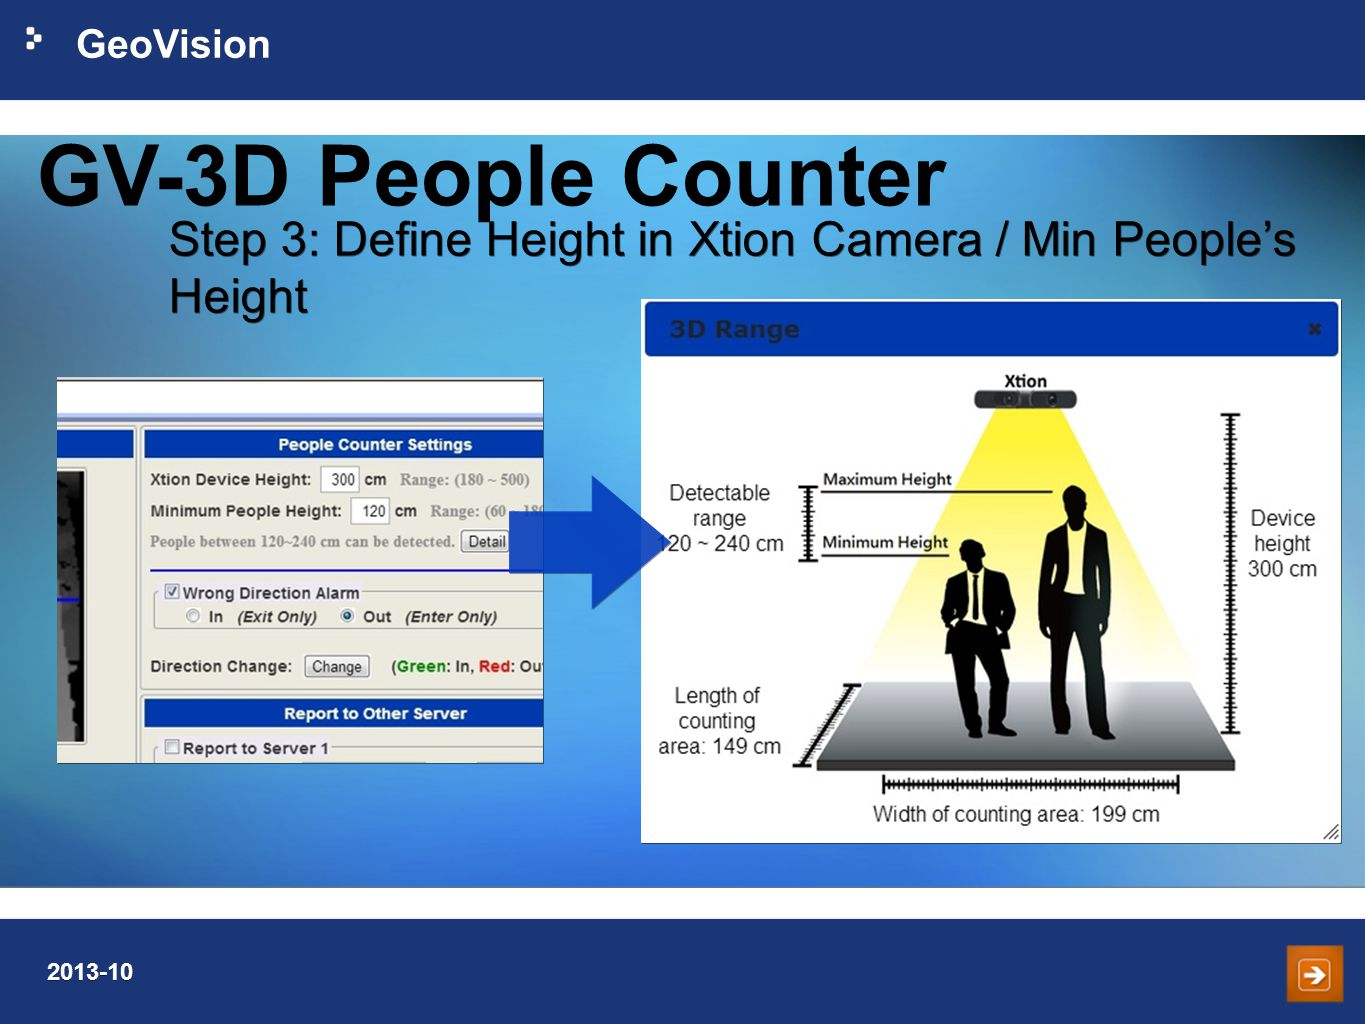 GV-3D People Counter Step 3: Define Height in Xtion Camera / Min People's Height